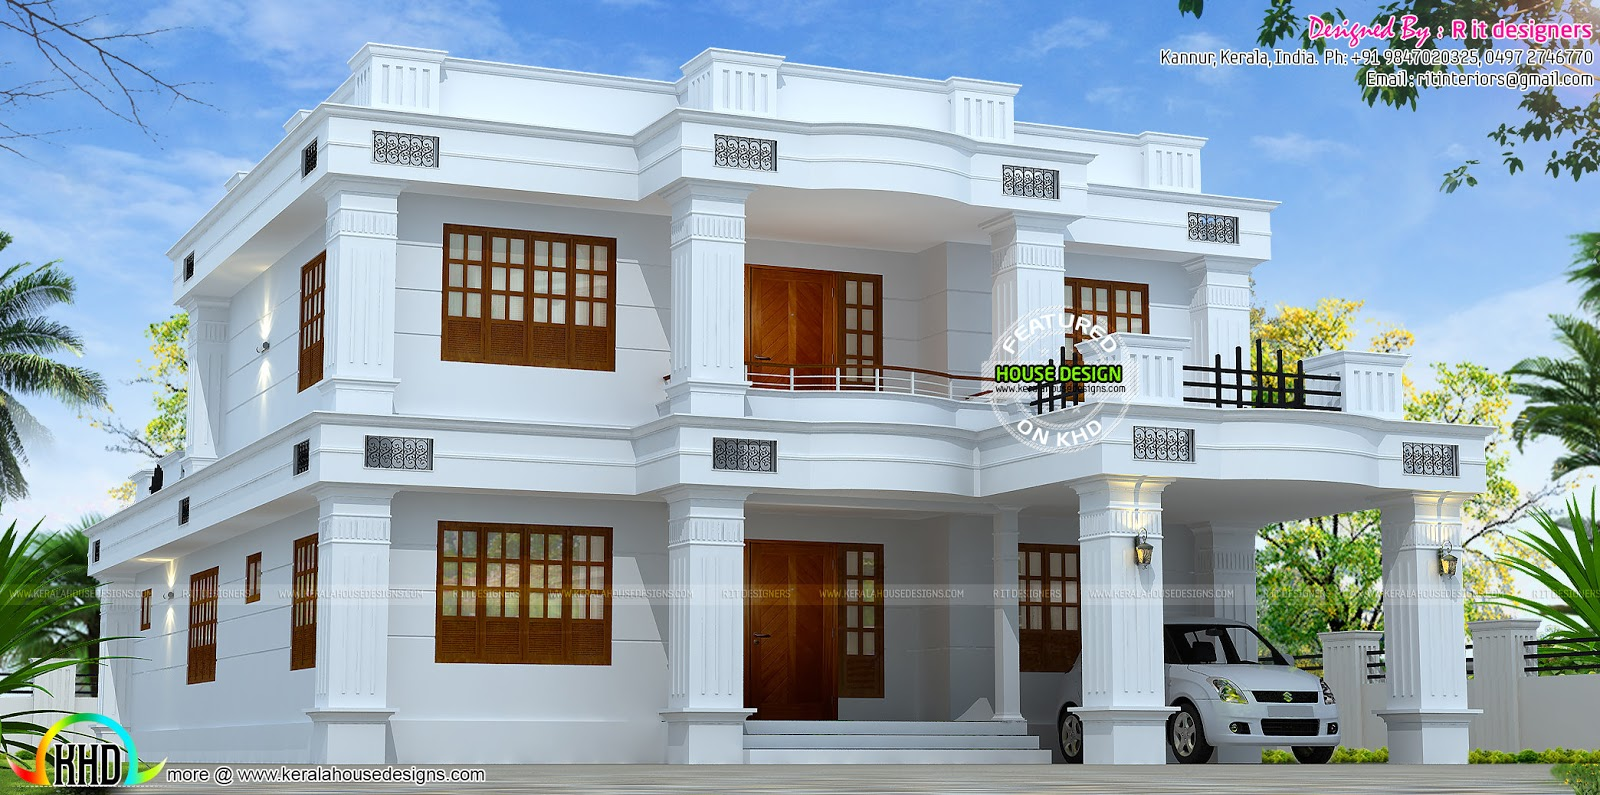 February 2016 kerala home design and floor plans - House to home designs ...